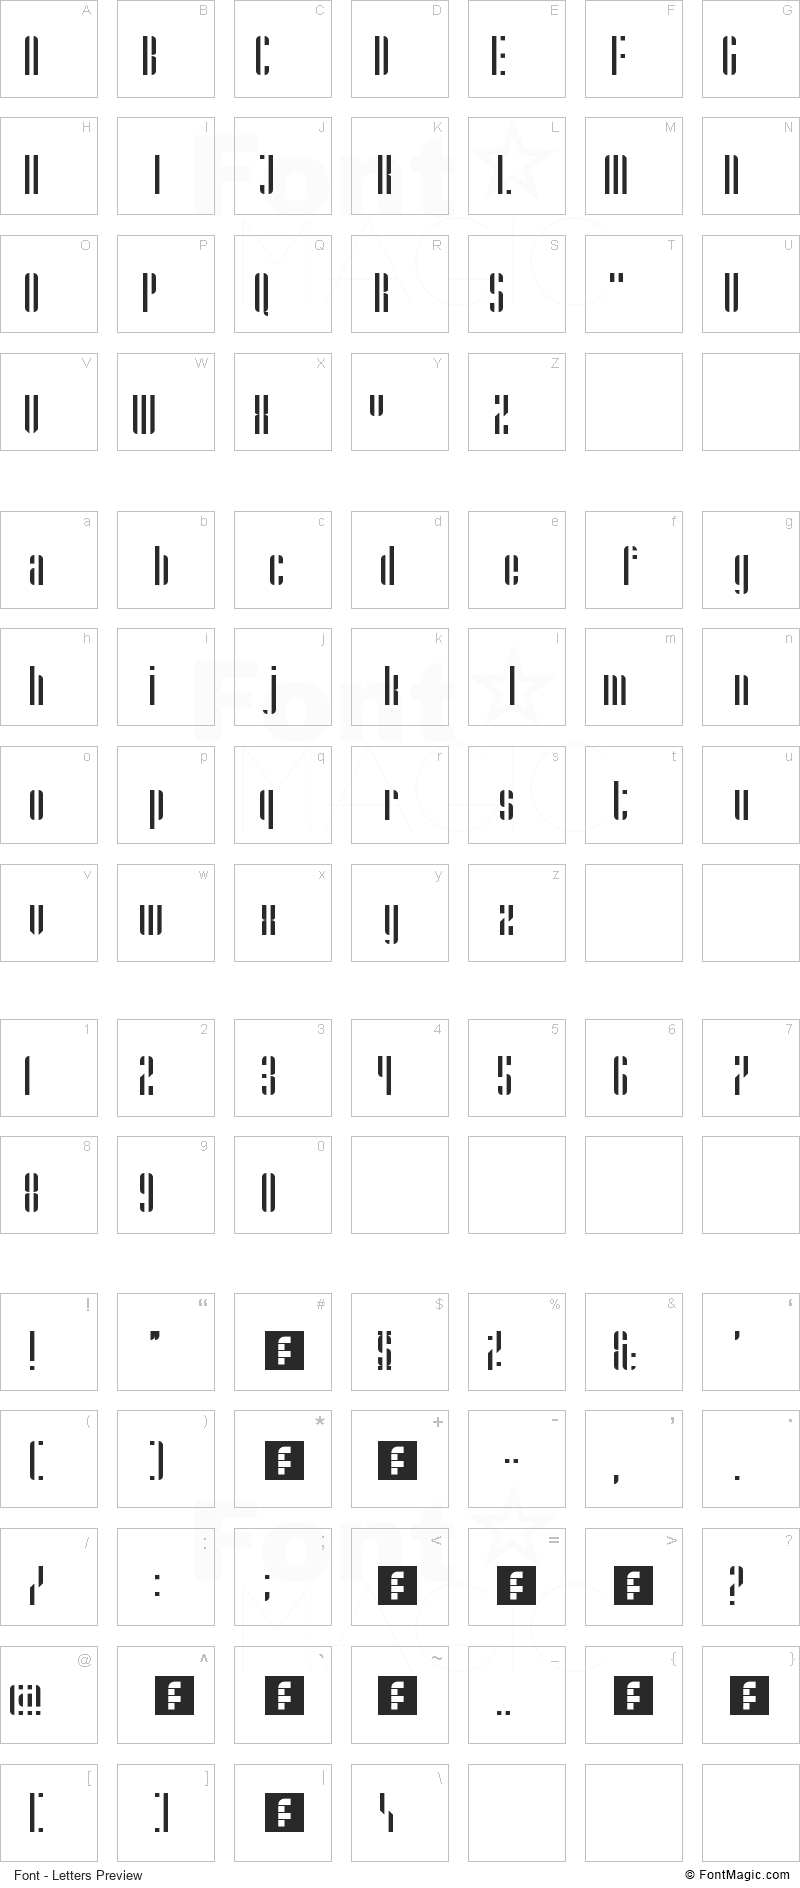 Stripes Font - All Latters Preview Chart